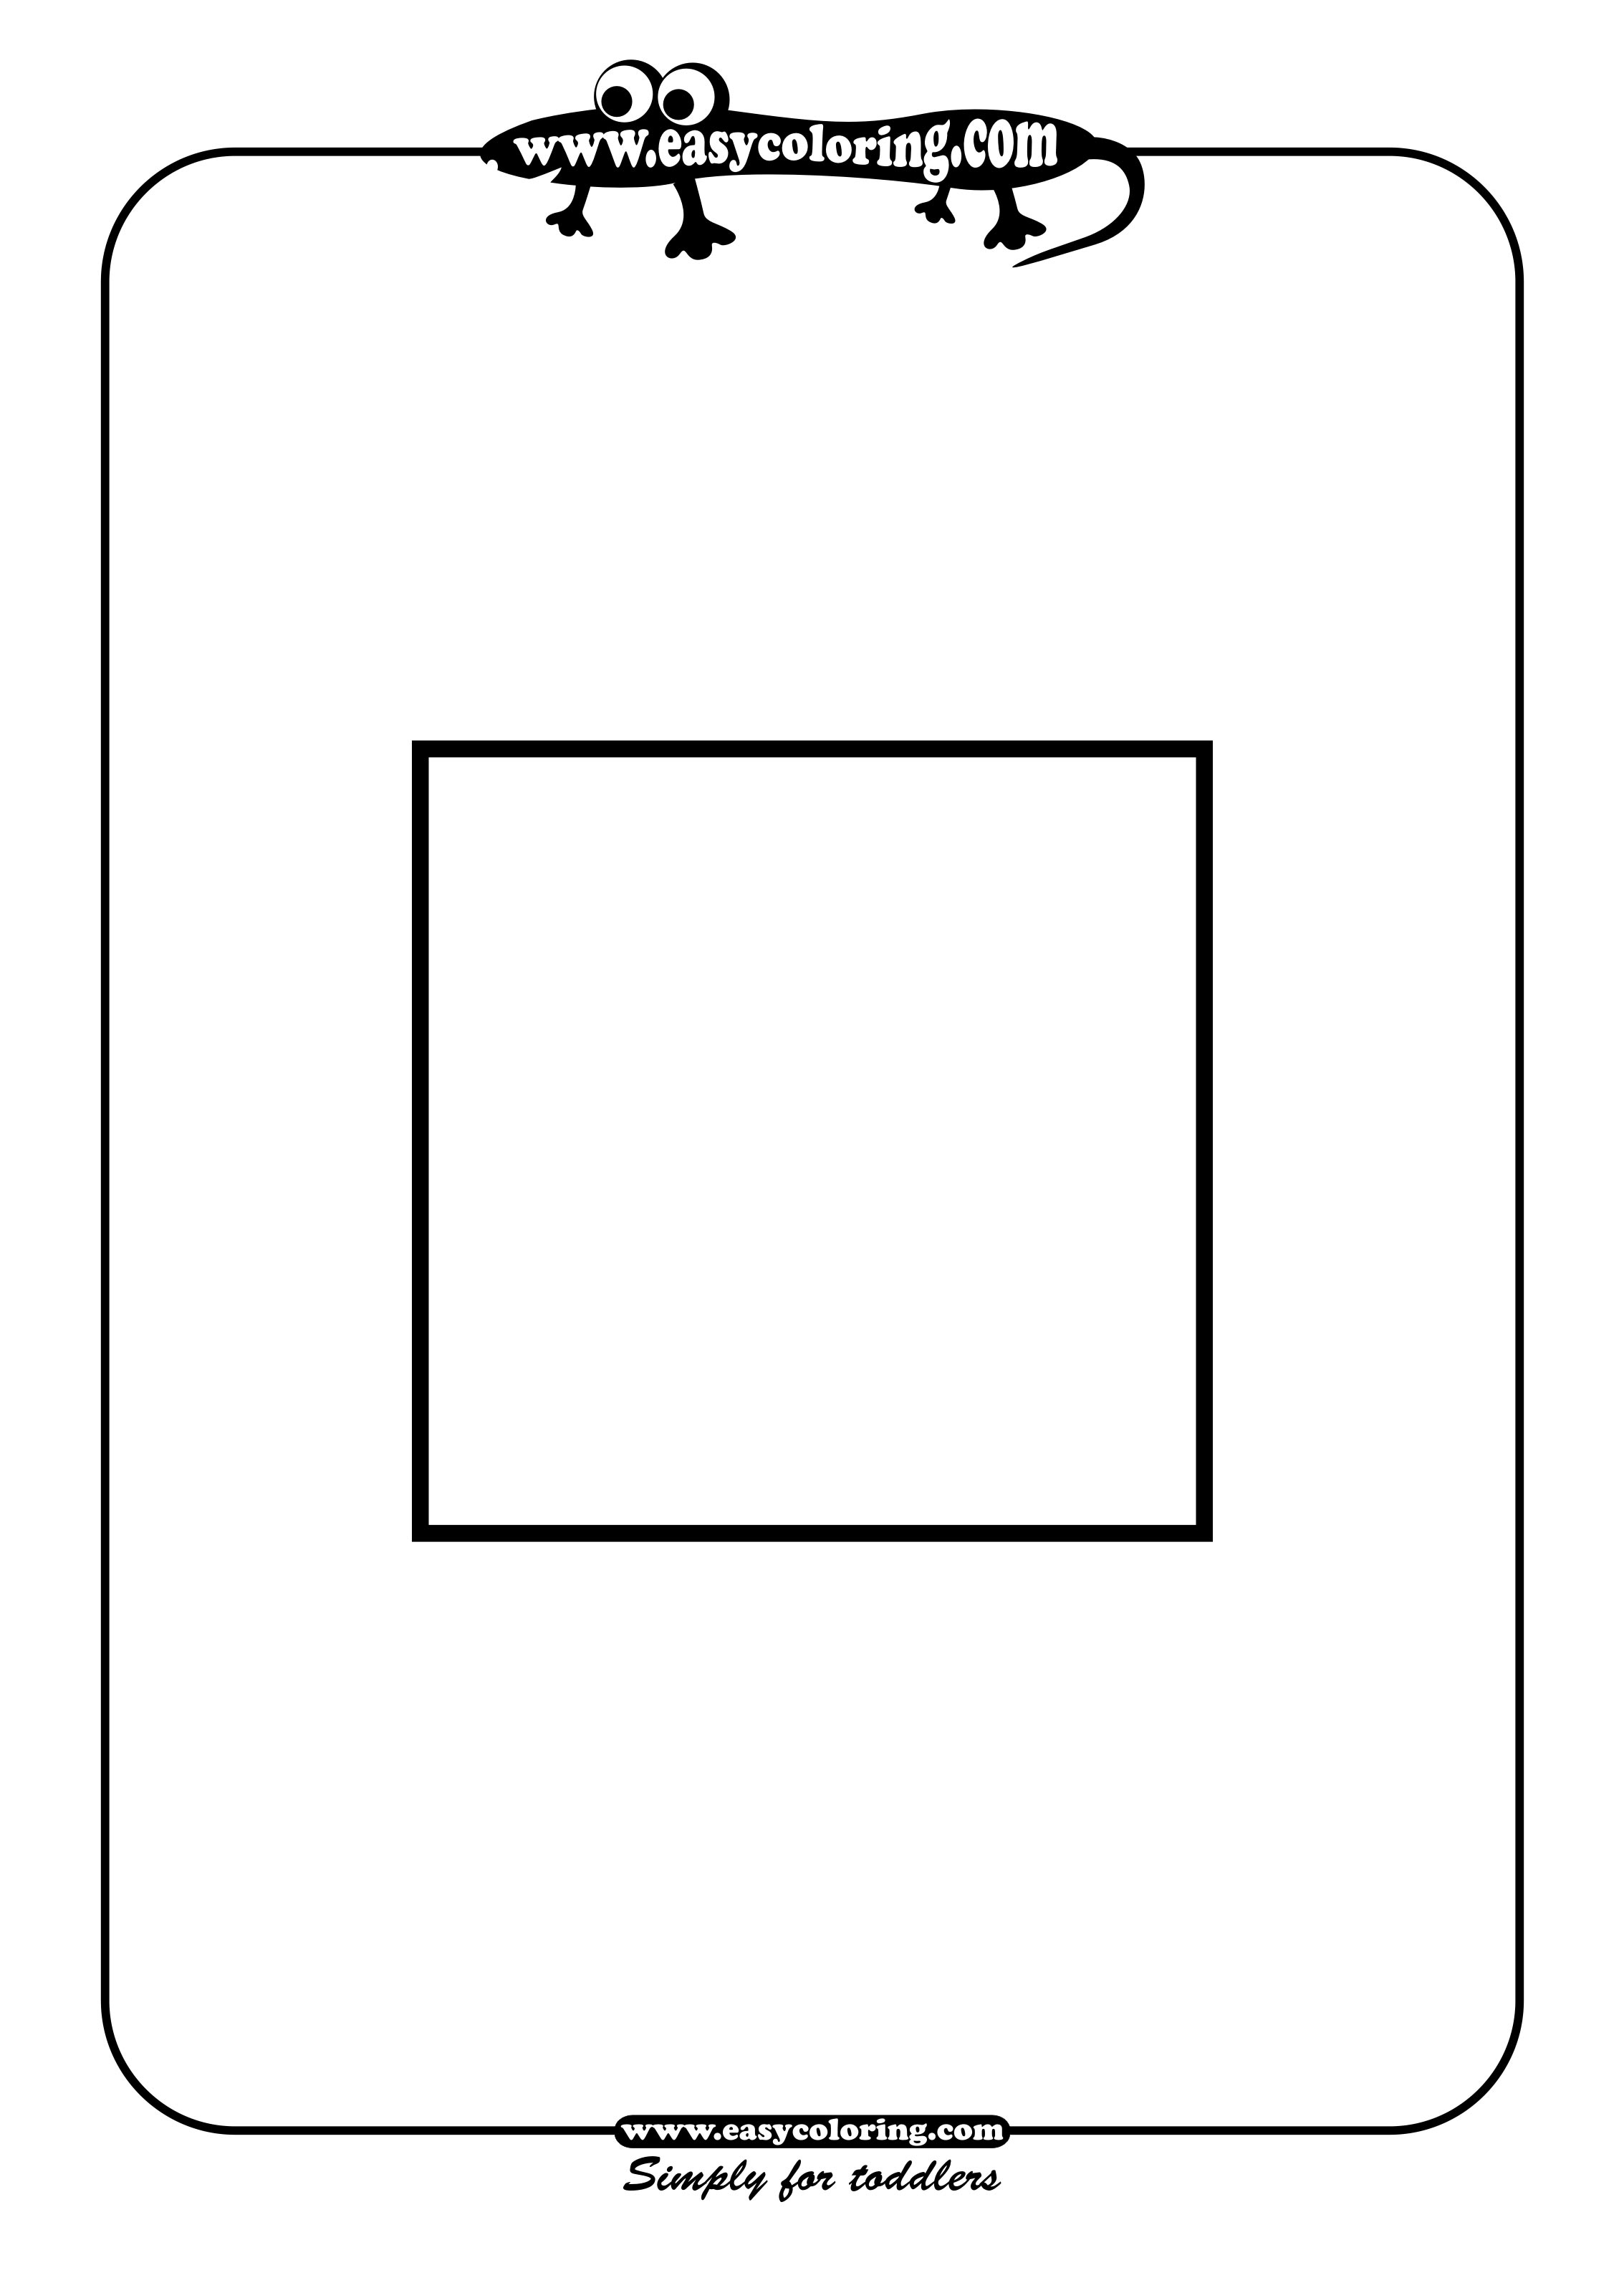 Square Simple Shapes Easy Coloring Pages For Toddlers